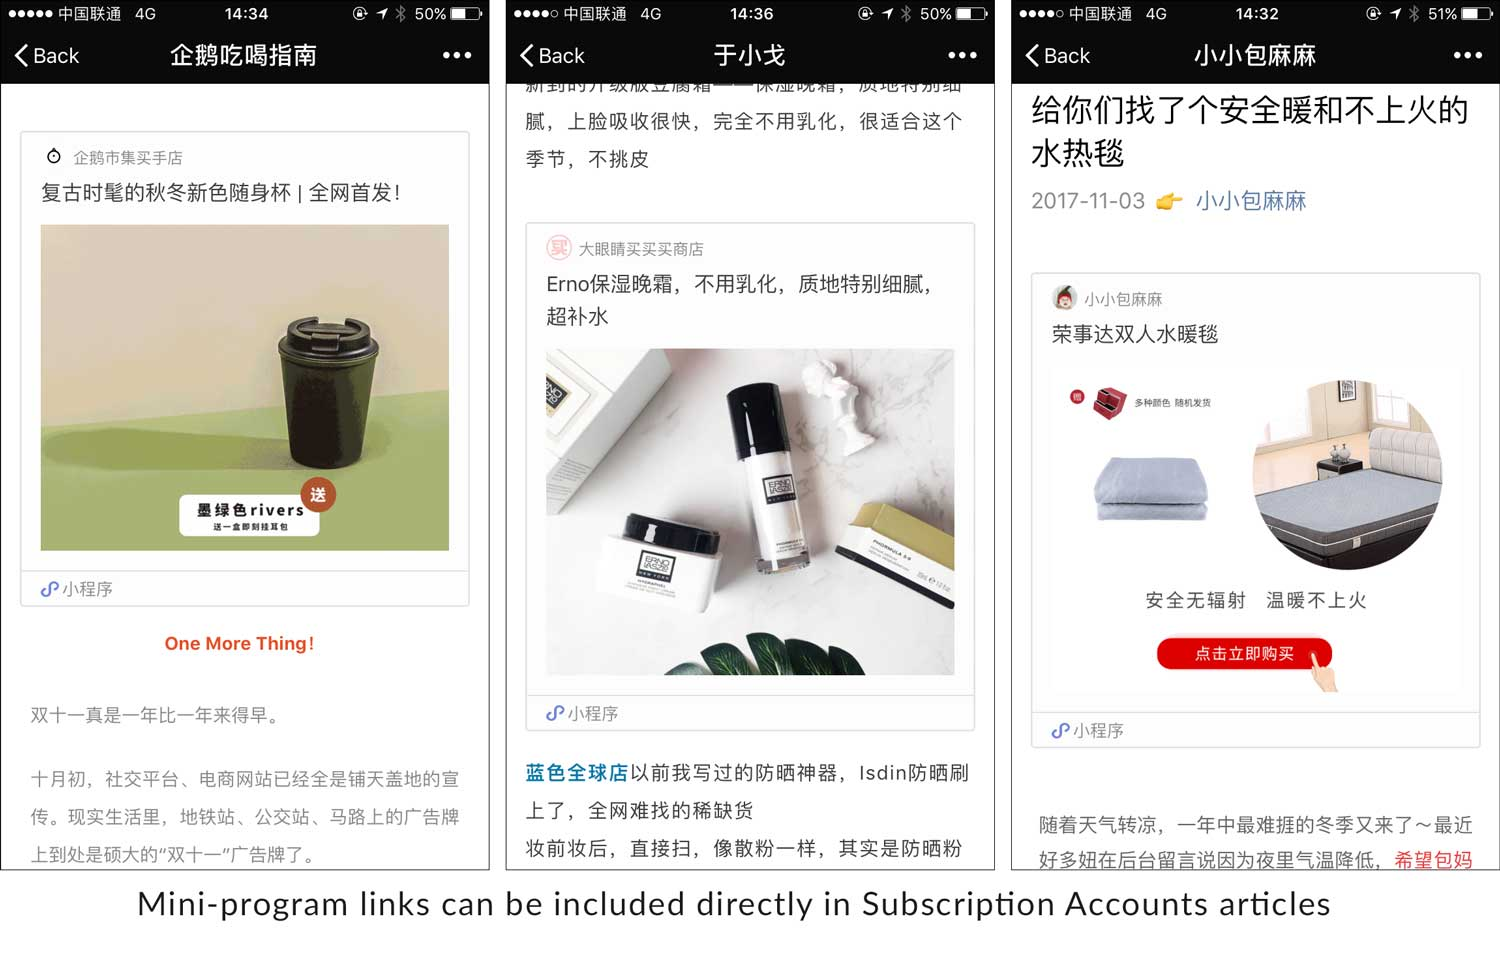 WeChat mini-programs have been taking China's ecommerce industry by